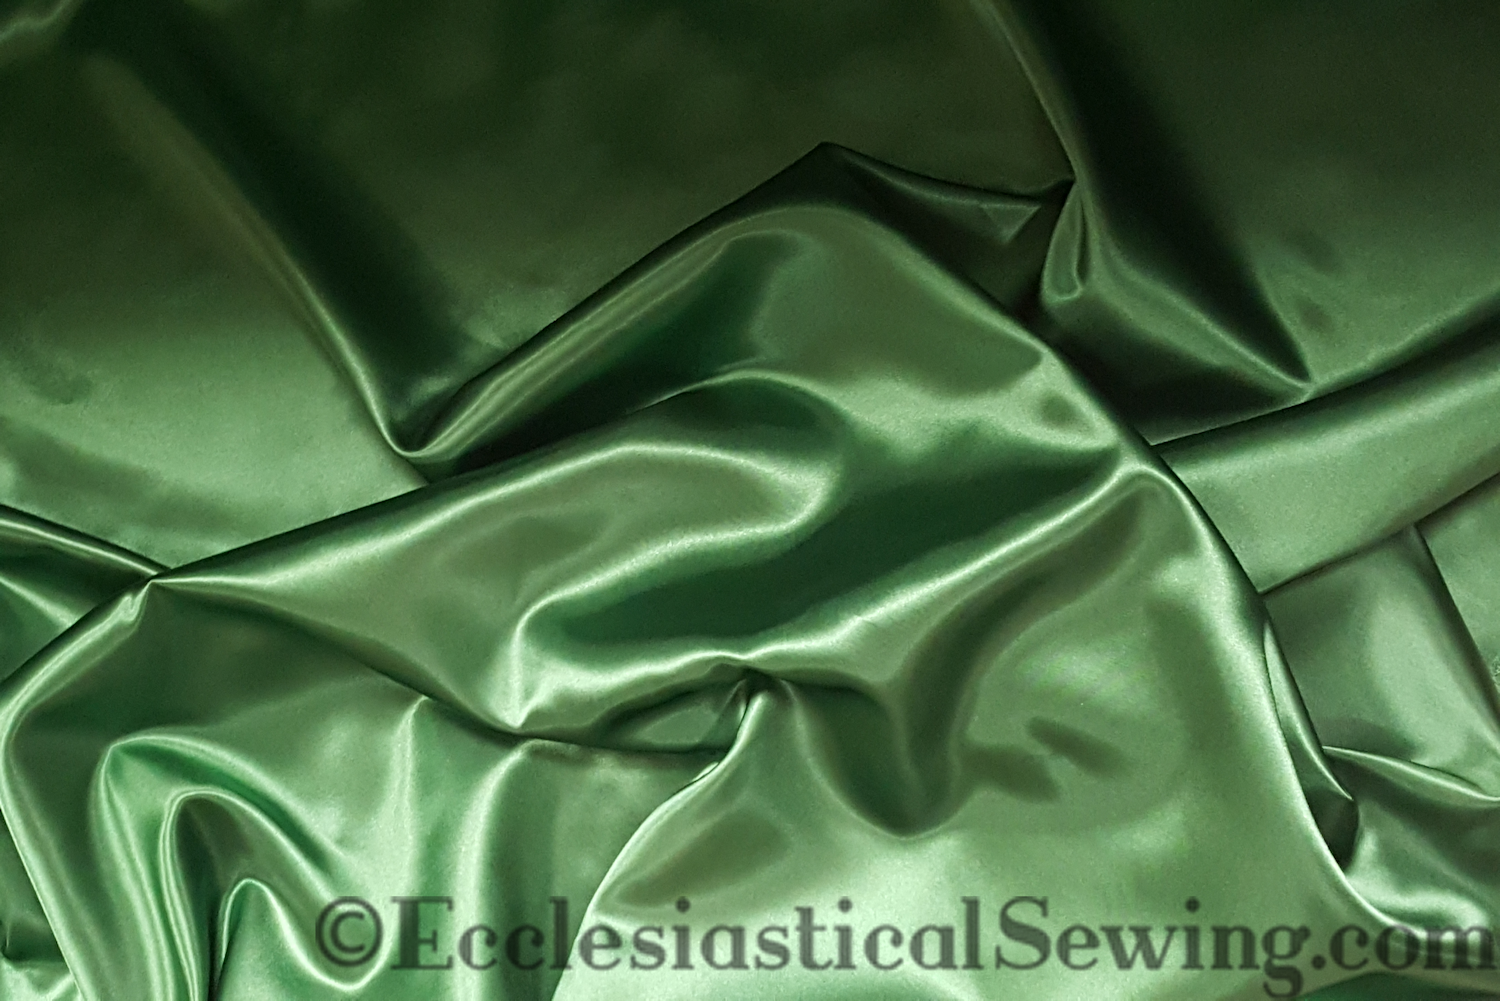 6fc64ca62aea5 ... Satin Fabric and Polyester Satin Fabric | Green, White, Silk, Gold and  other ...